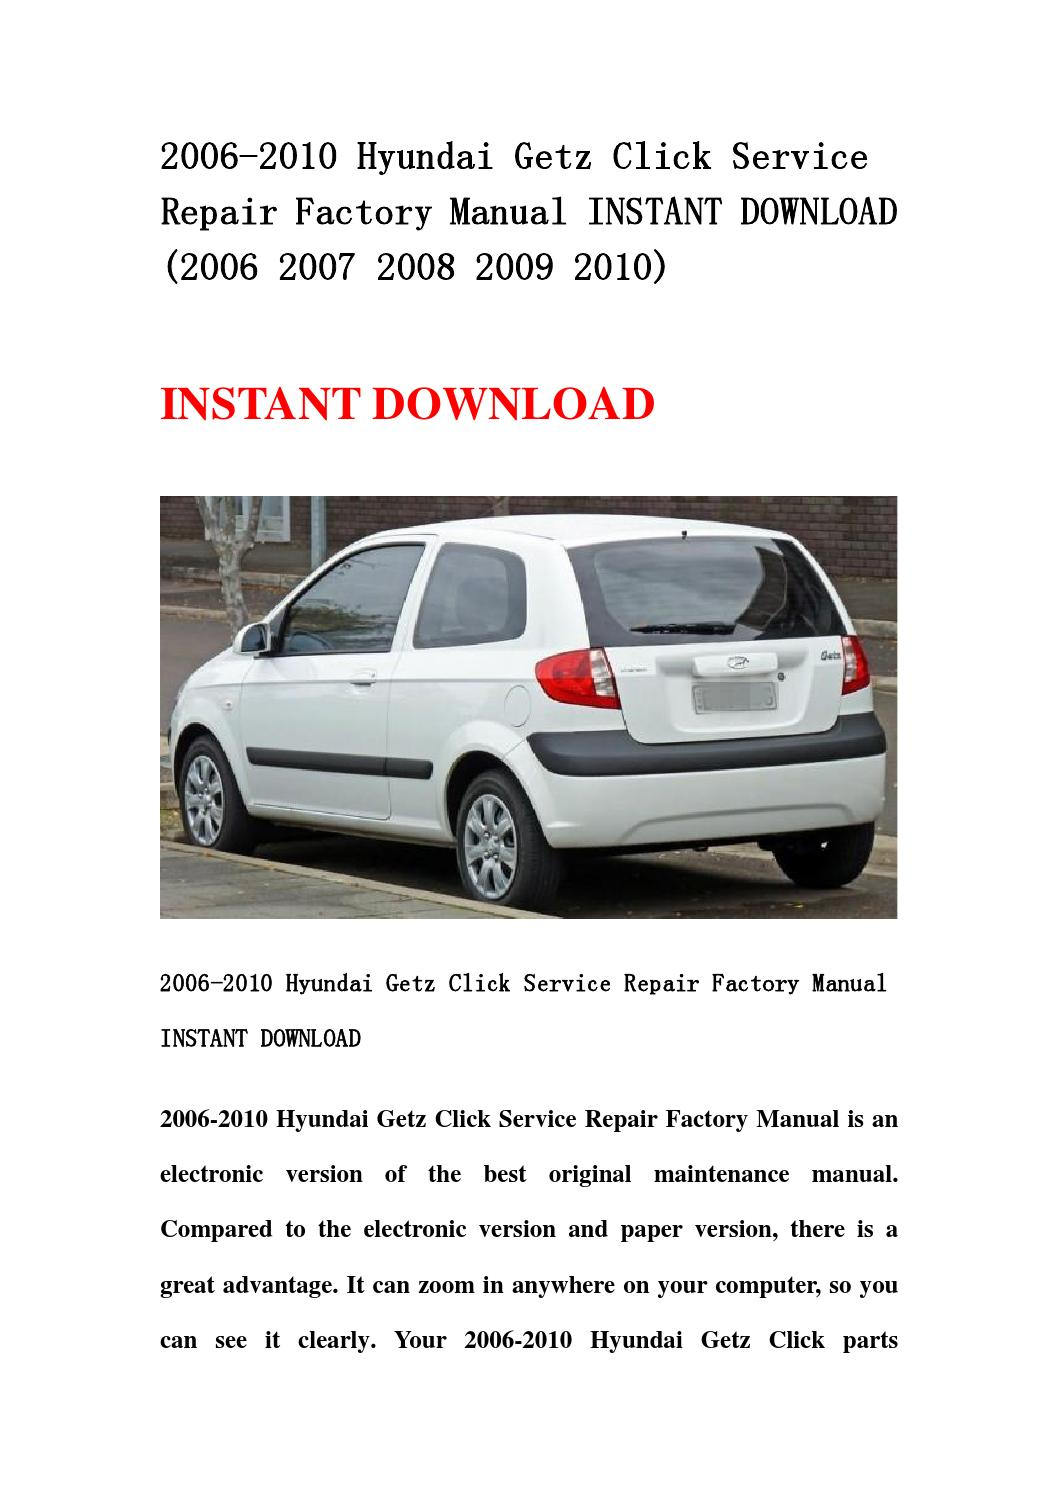 2006 2010 hyundai getz click service repair factory manual instant download  (2006 2007 2008 2009 201 by kmsjenfhnse - issuu